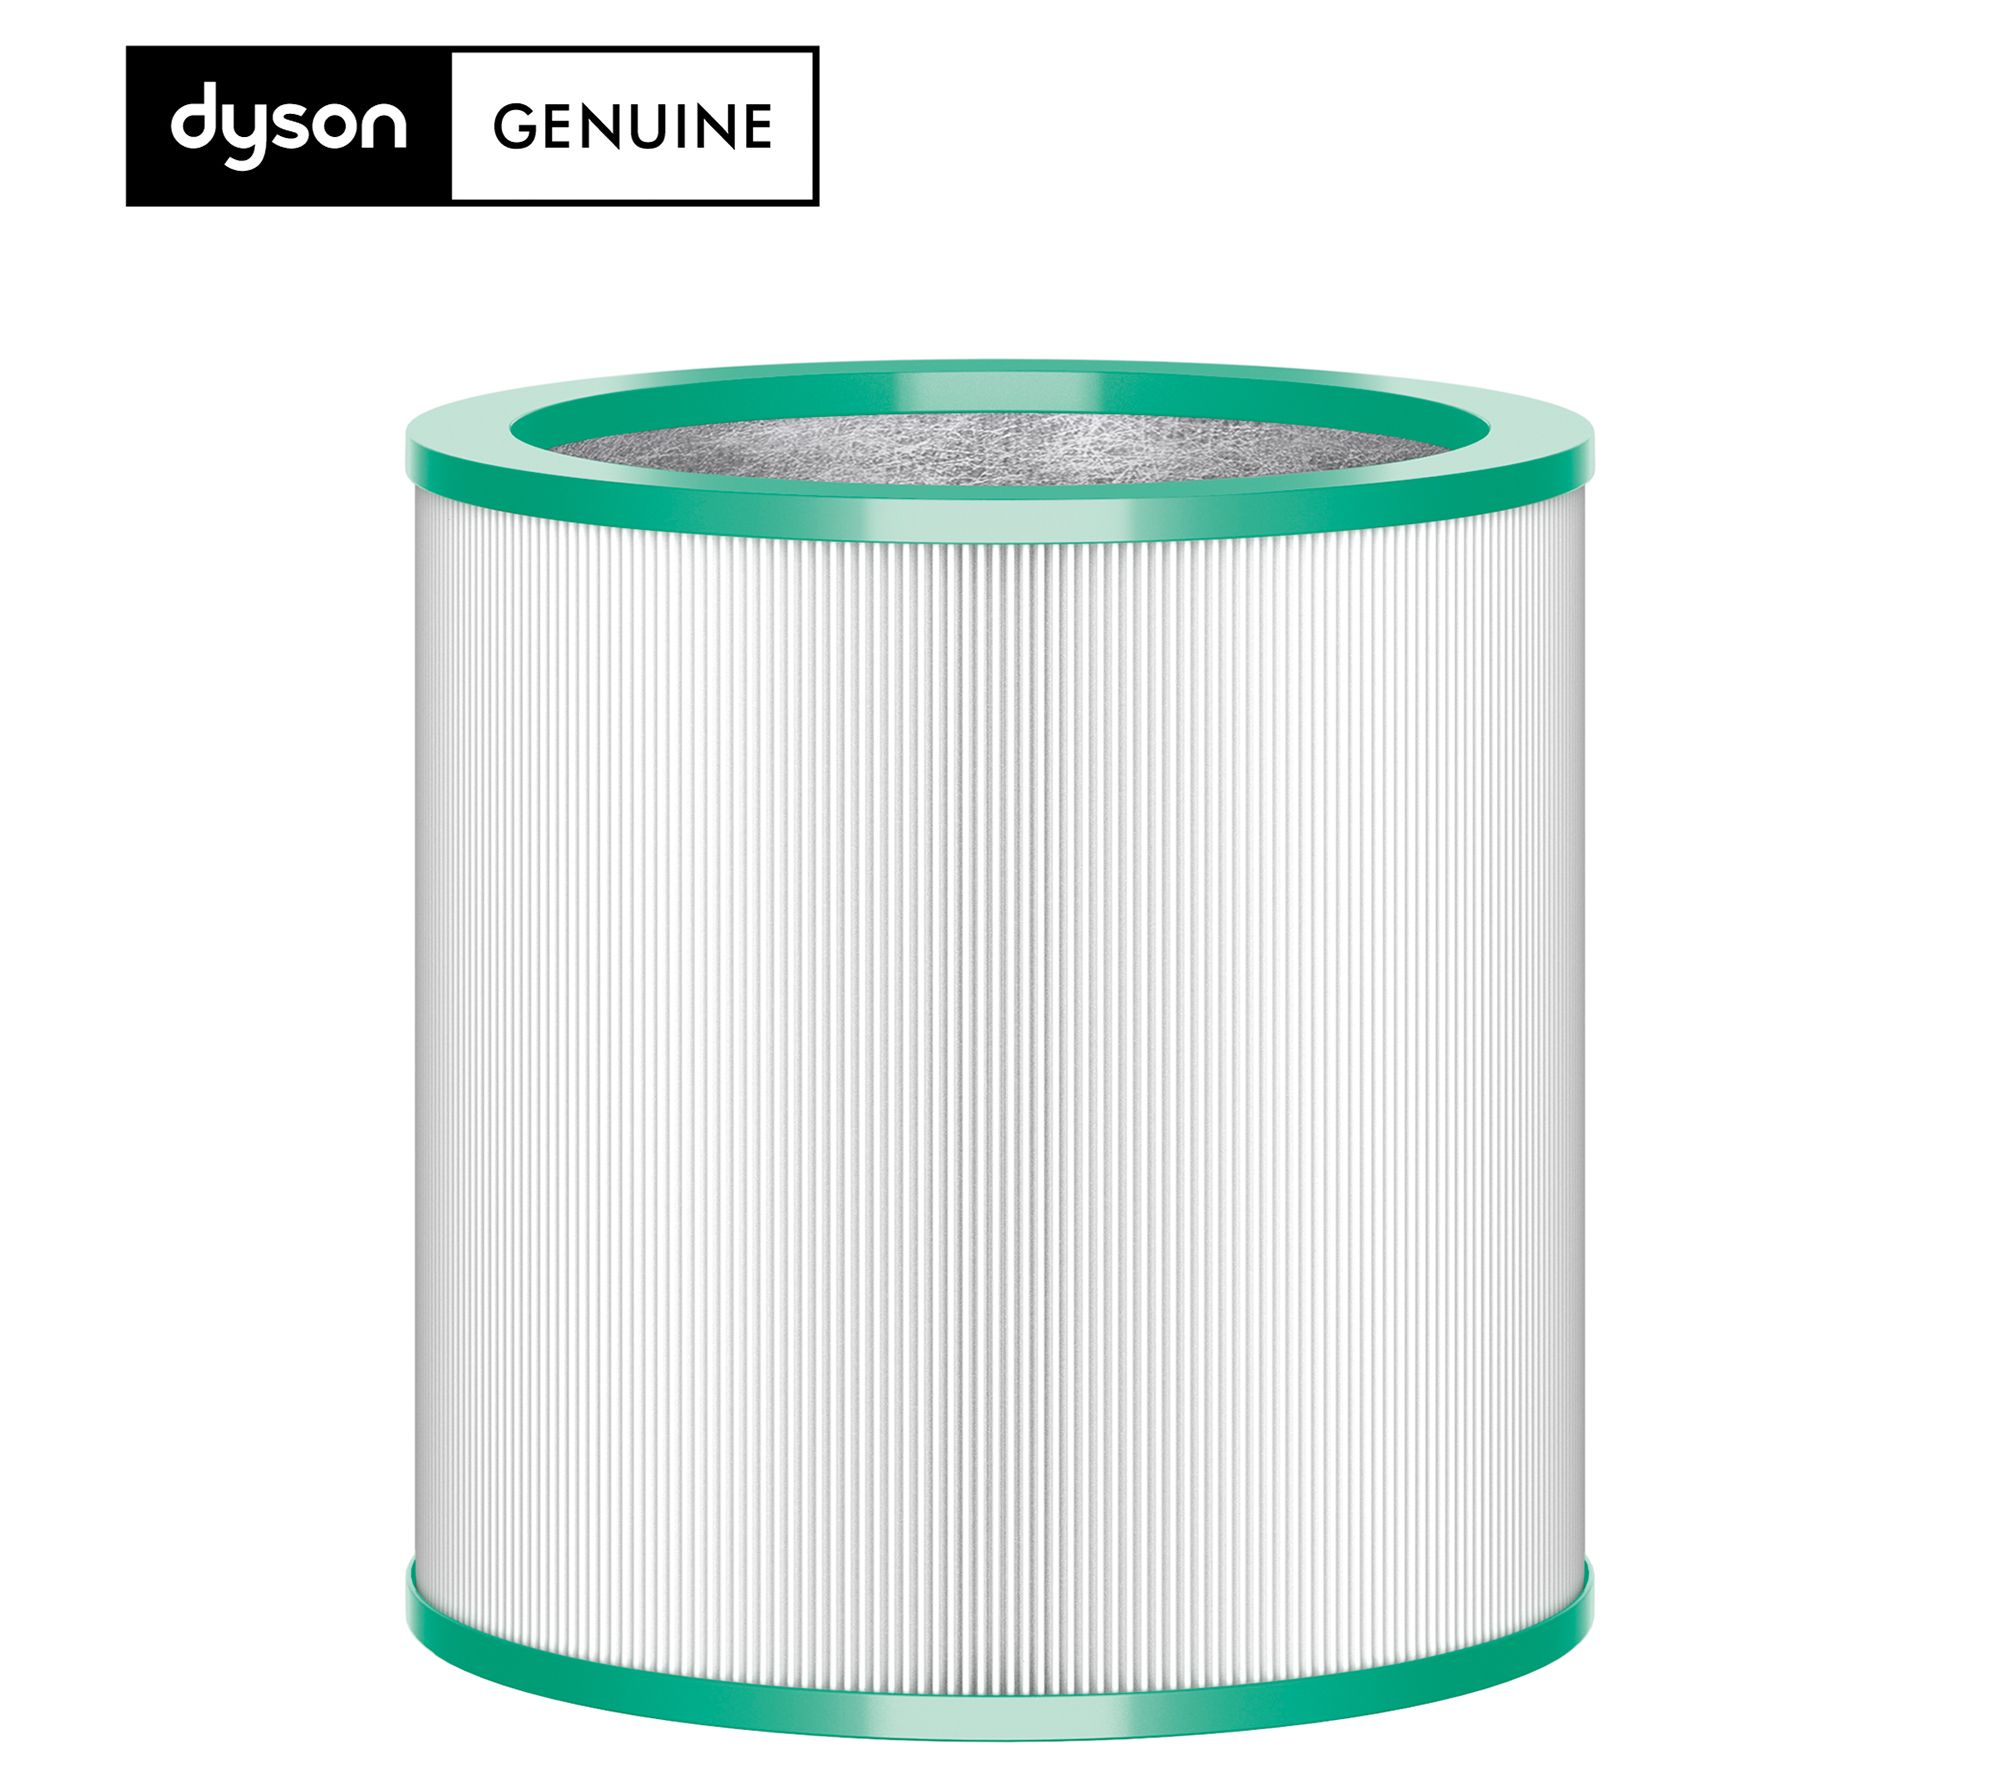 dyson pure cool air filter replacement page 1. Black Bedroom Furniture Sets. Home Design Ideas